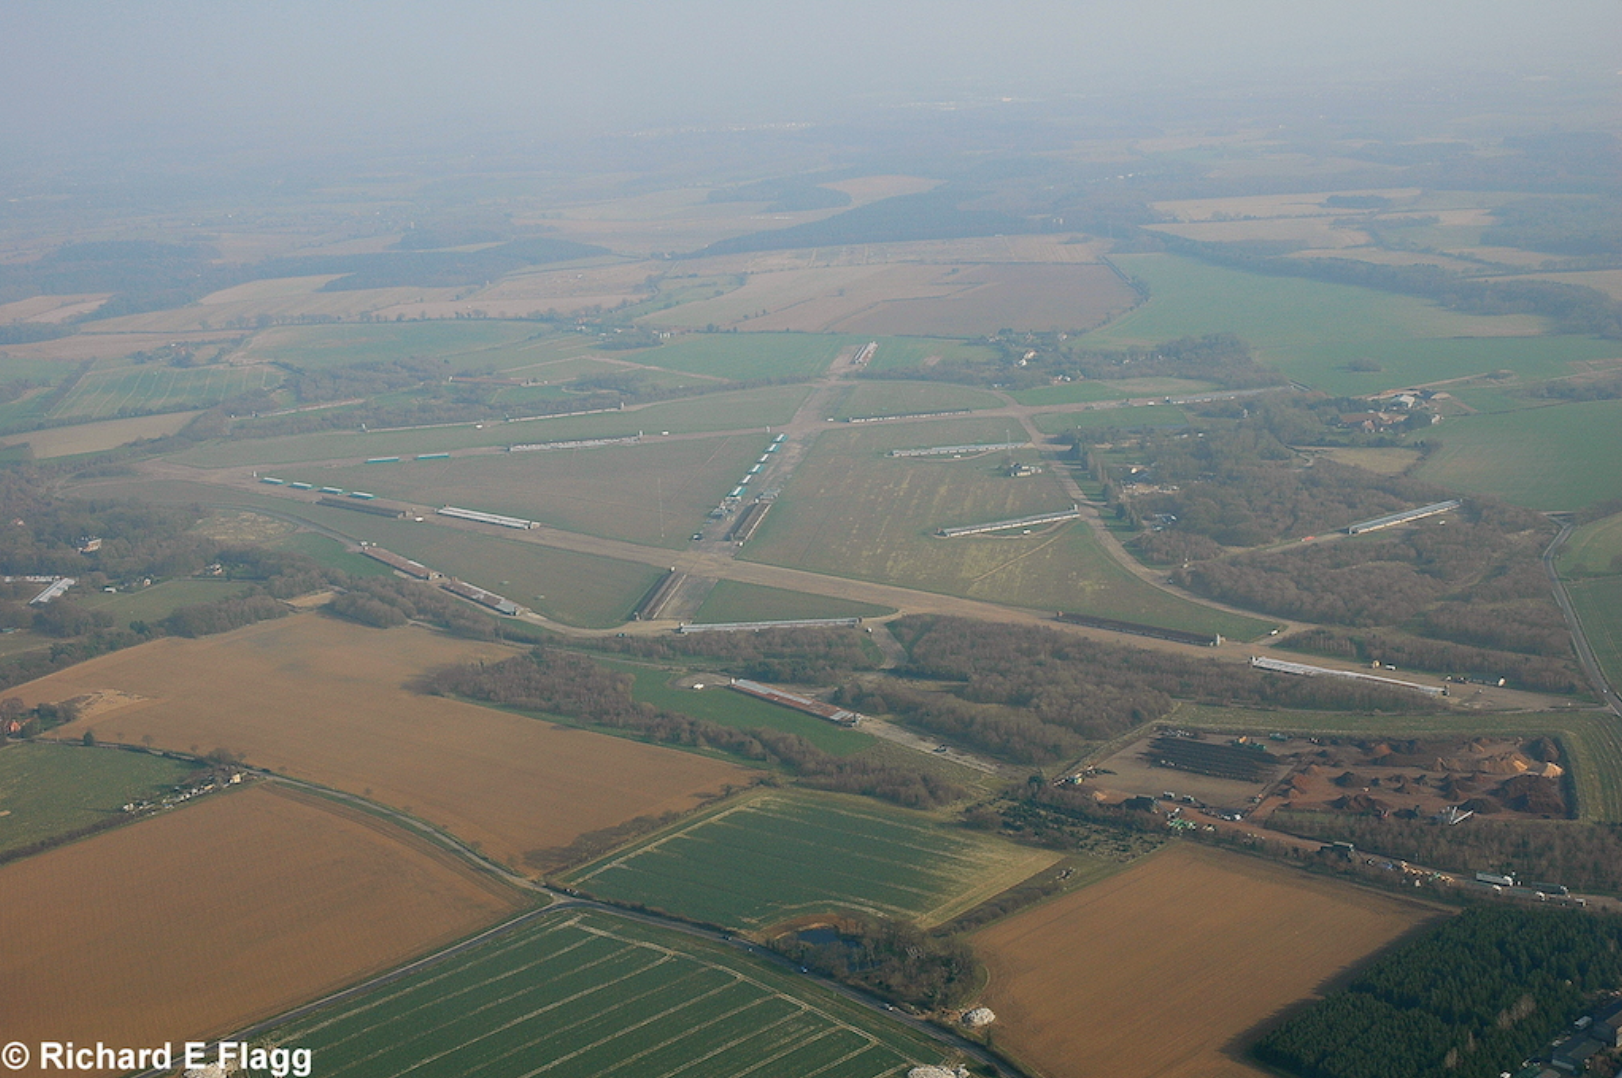 004Aerial view of RAF Attlebridge Airfield - 21 March 2009.png